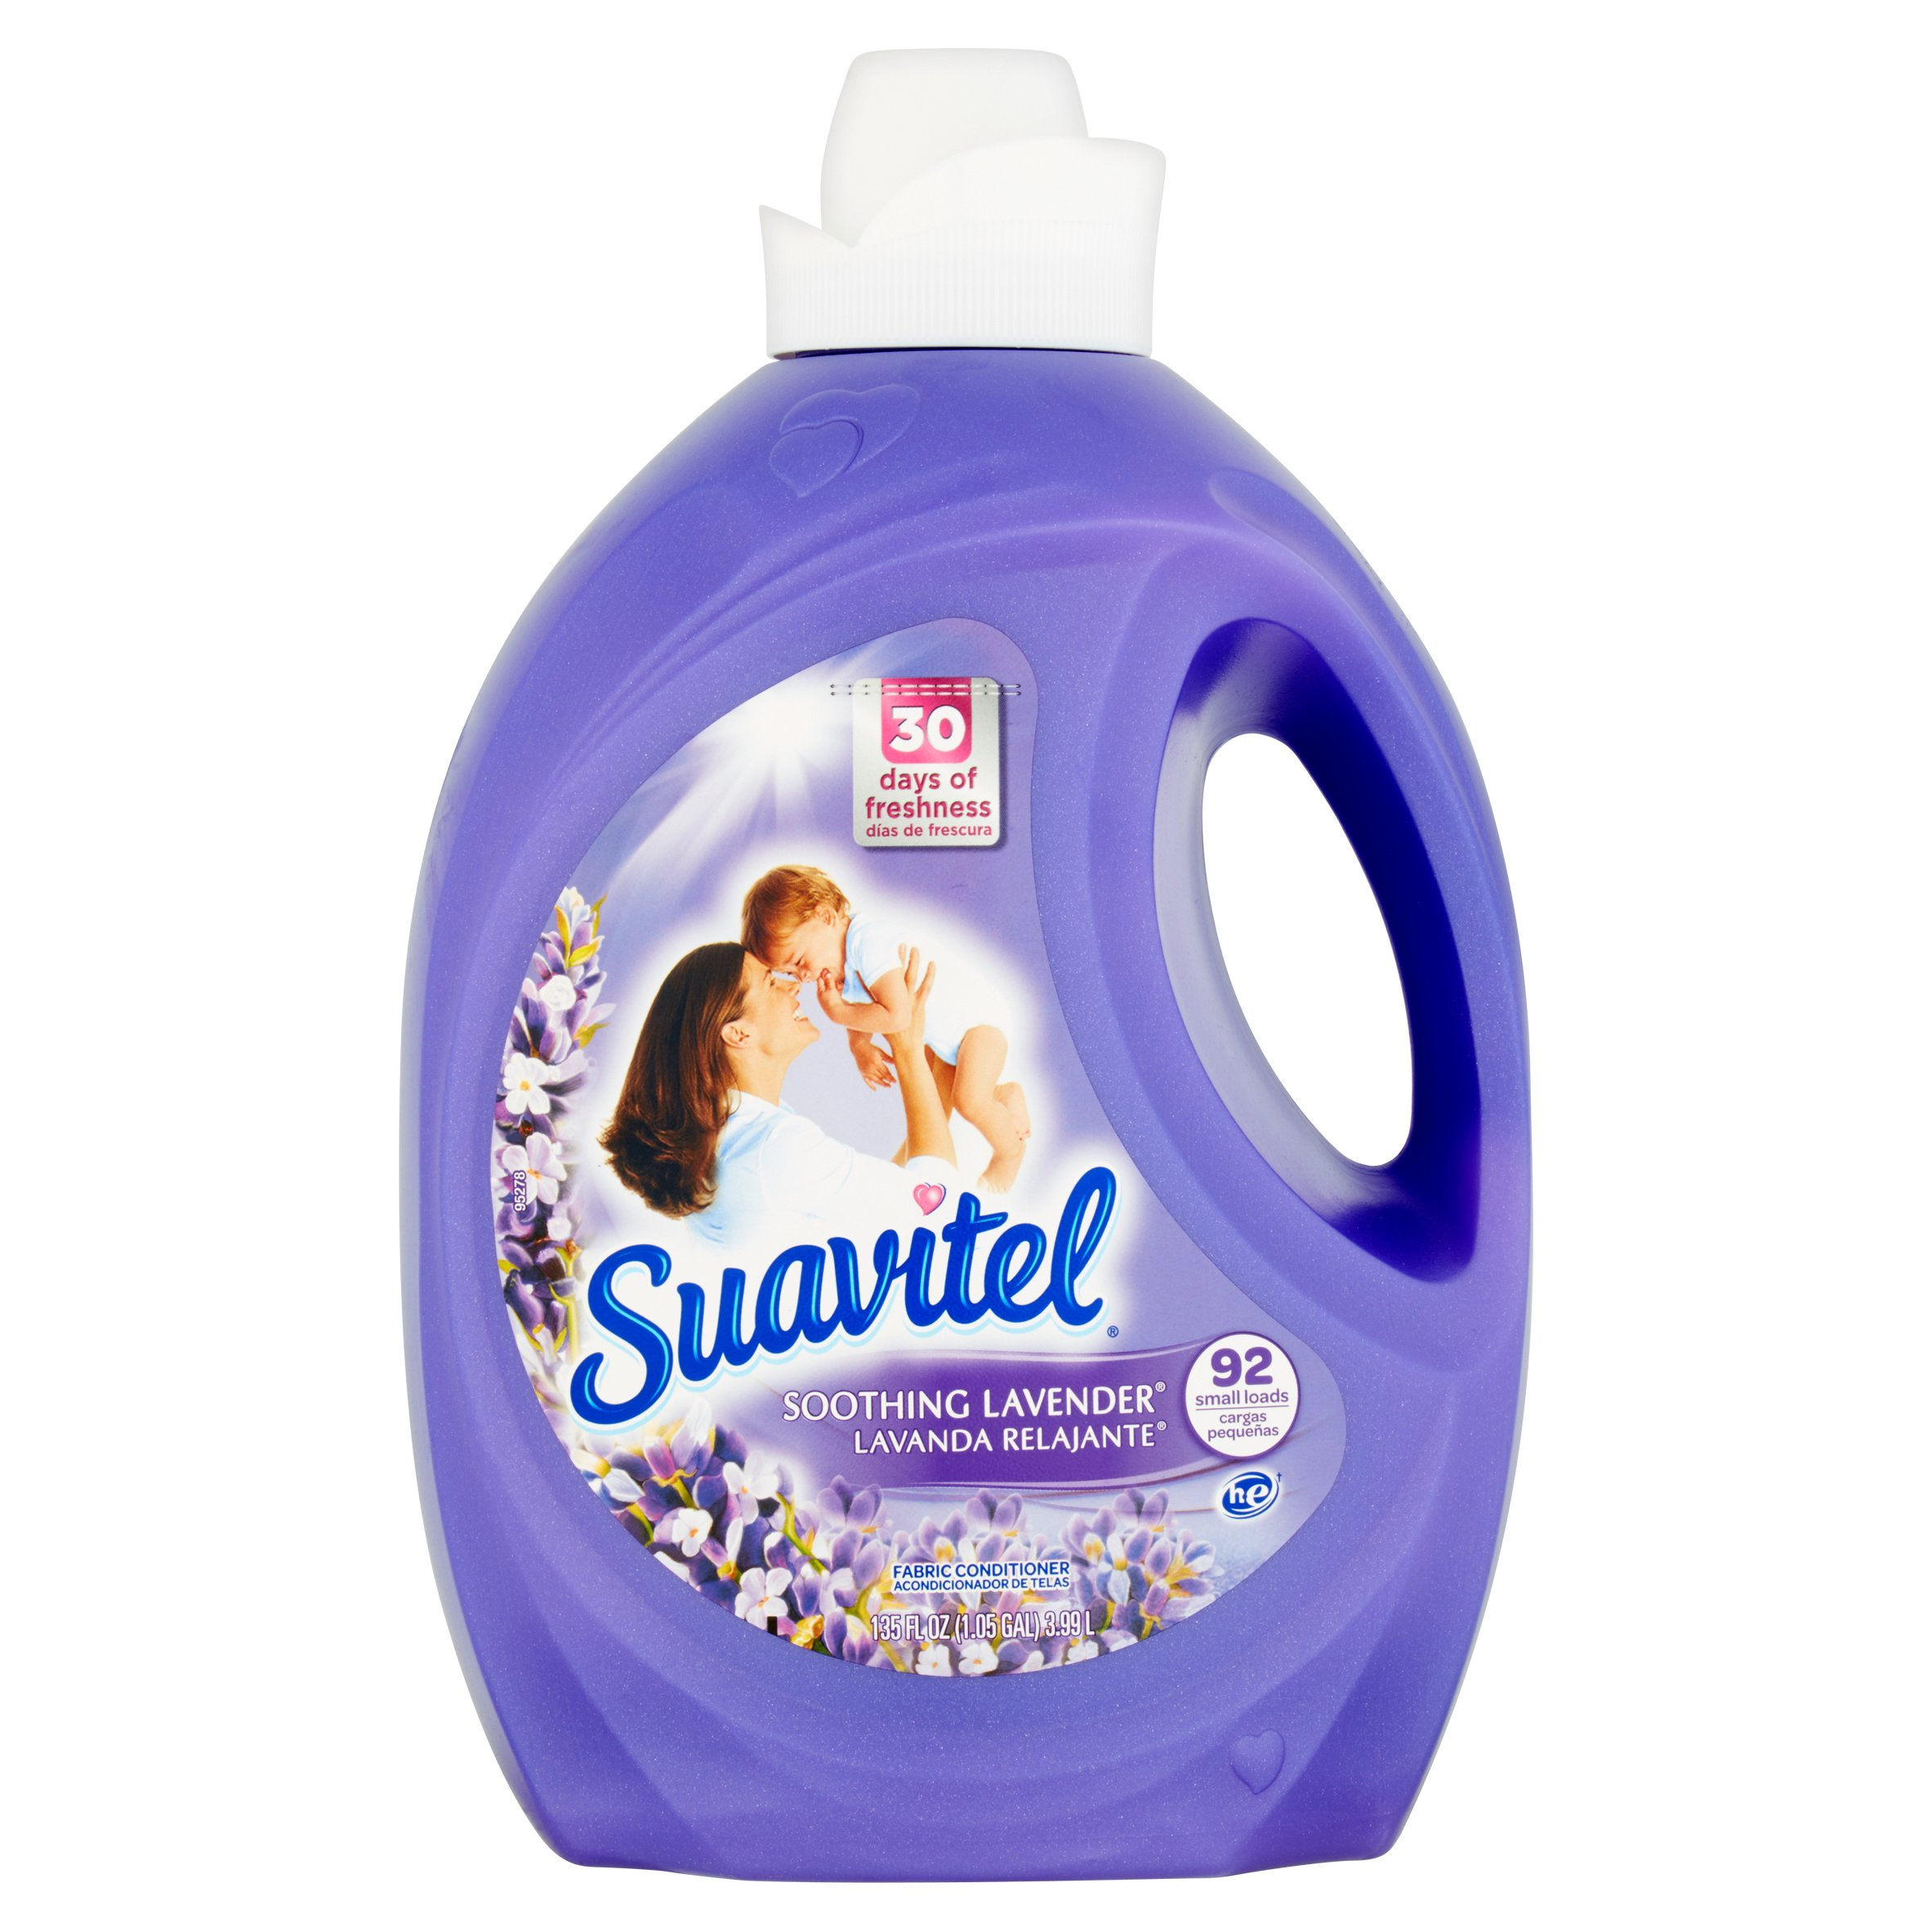 Suavitel Soothing Lavender Liquid Fabric Conditioiner, 135 fl oz